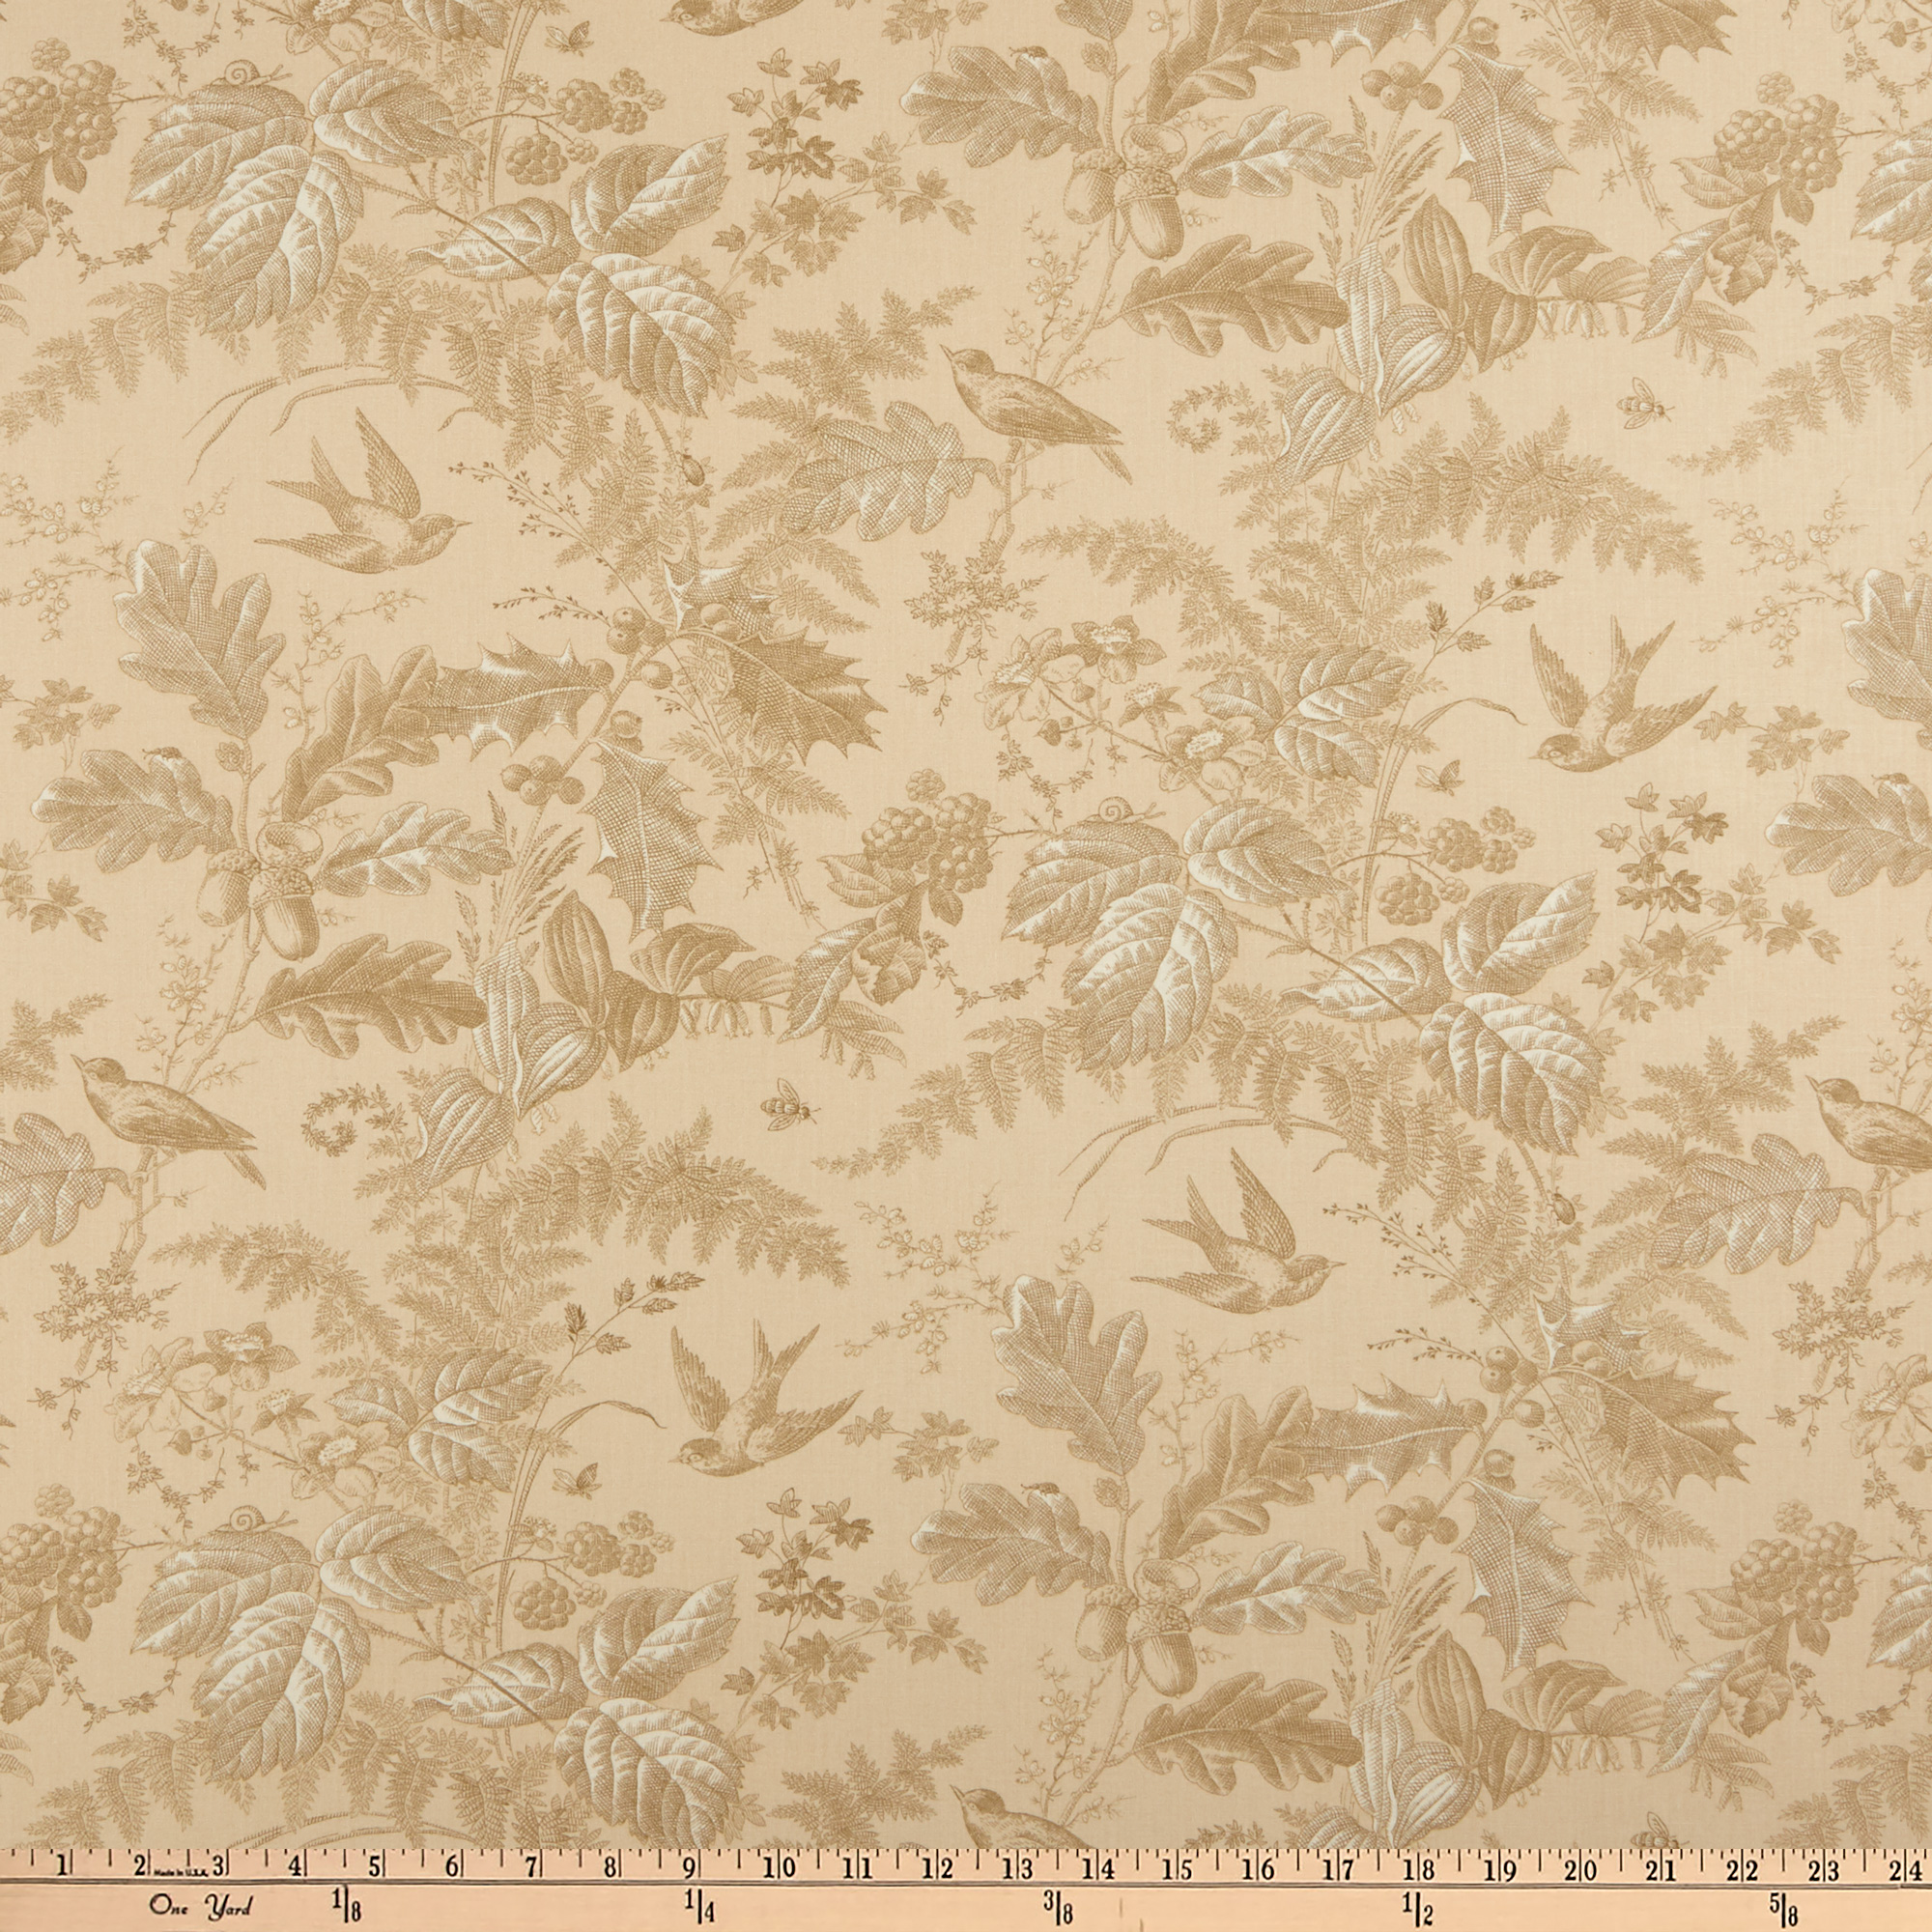 Andover Evergreen Toile Husk Fabric